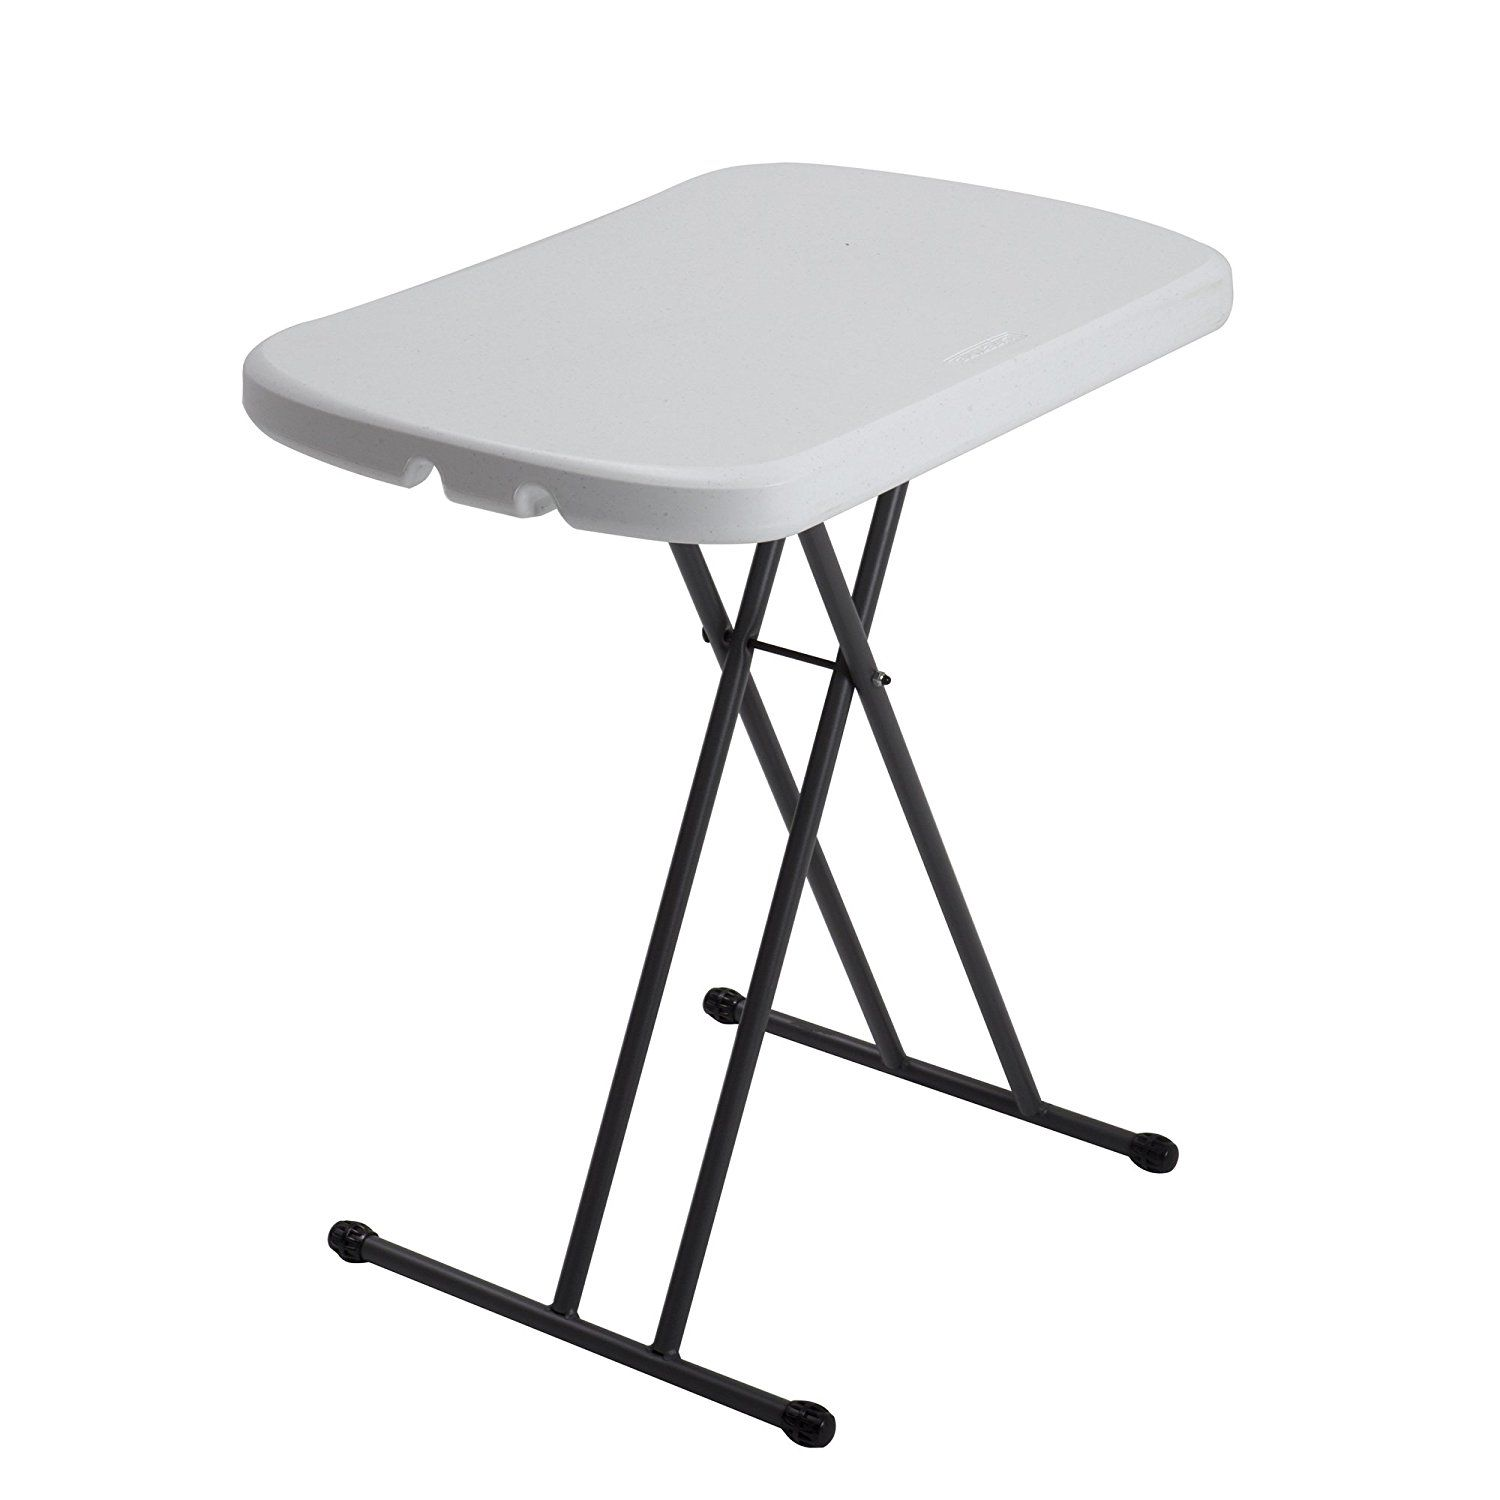 Perks And Advantages Of Small Plastic Folding Table Designalls In 2020 Folding Table Folding Laptop Table Lifetime Tables